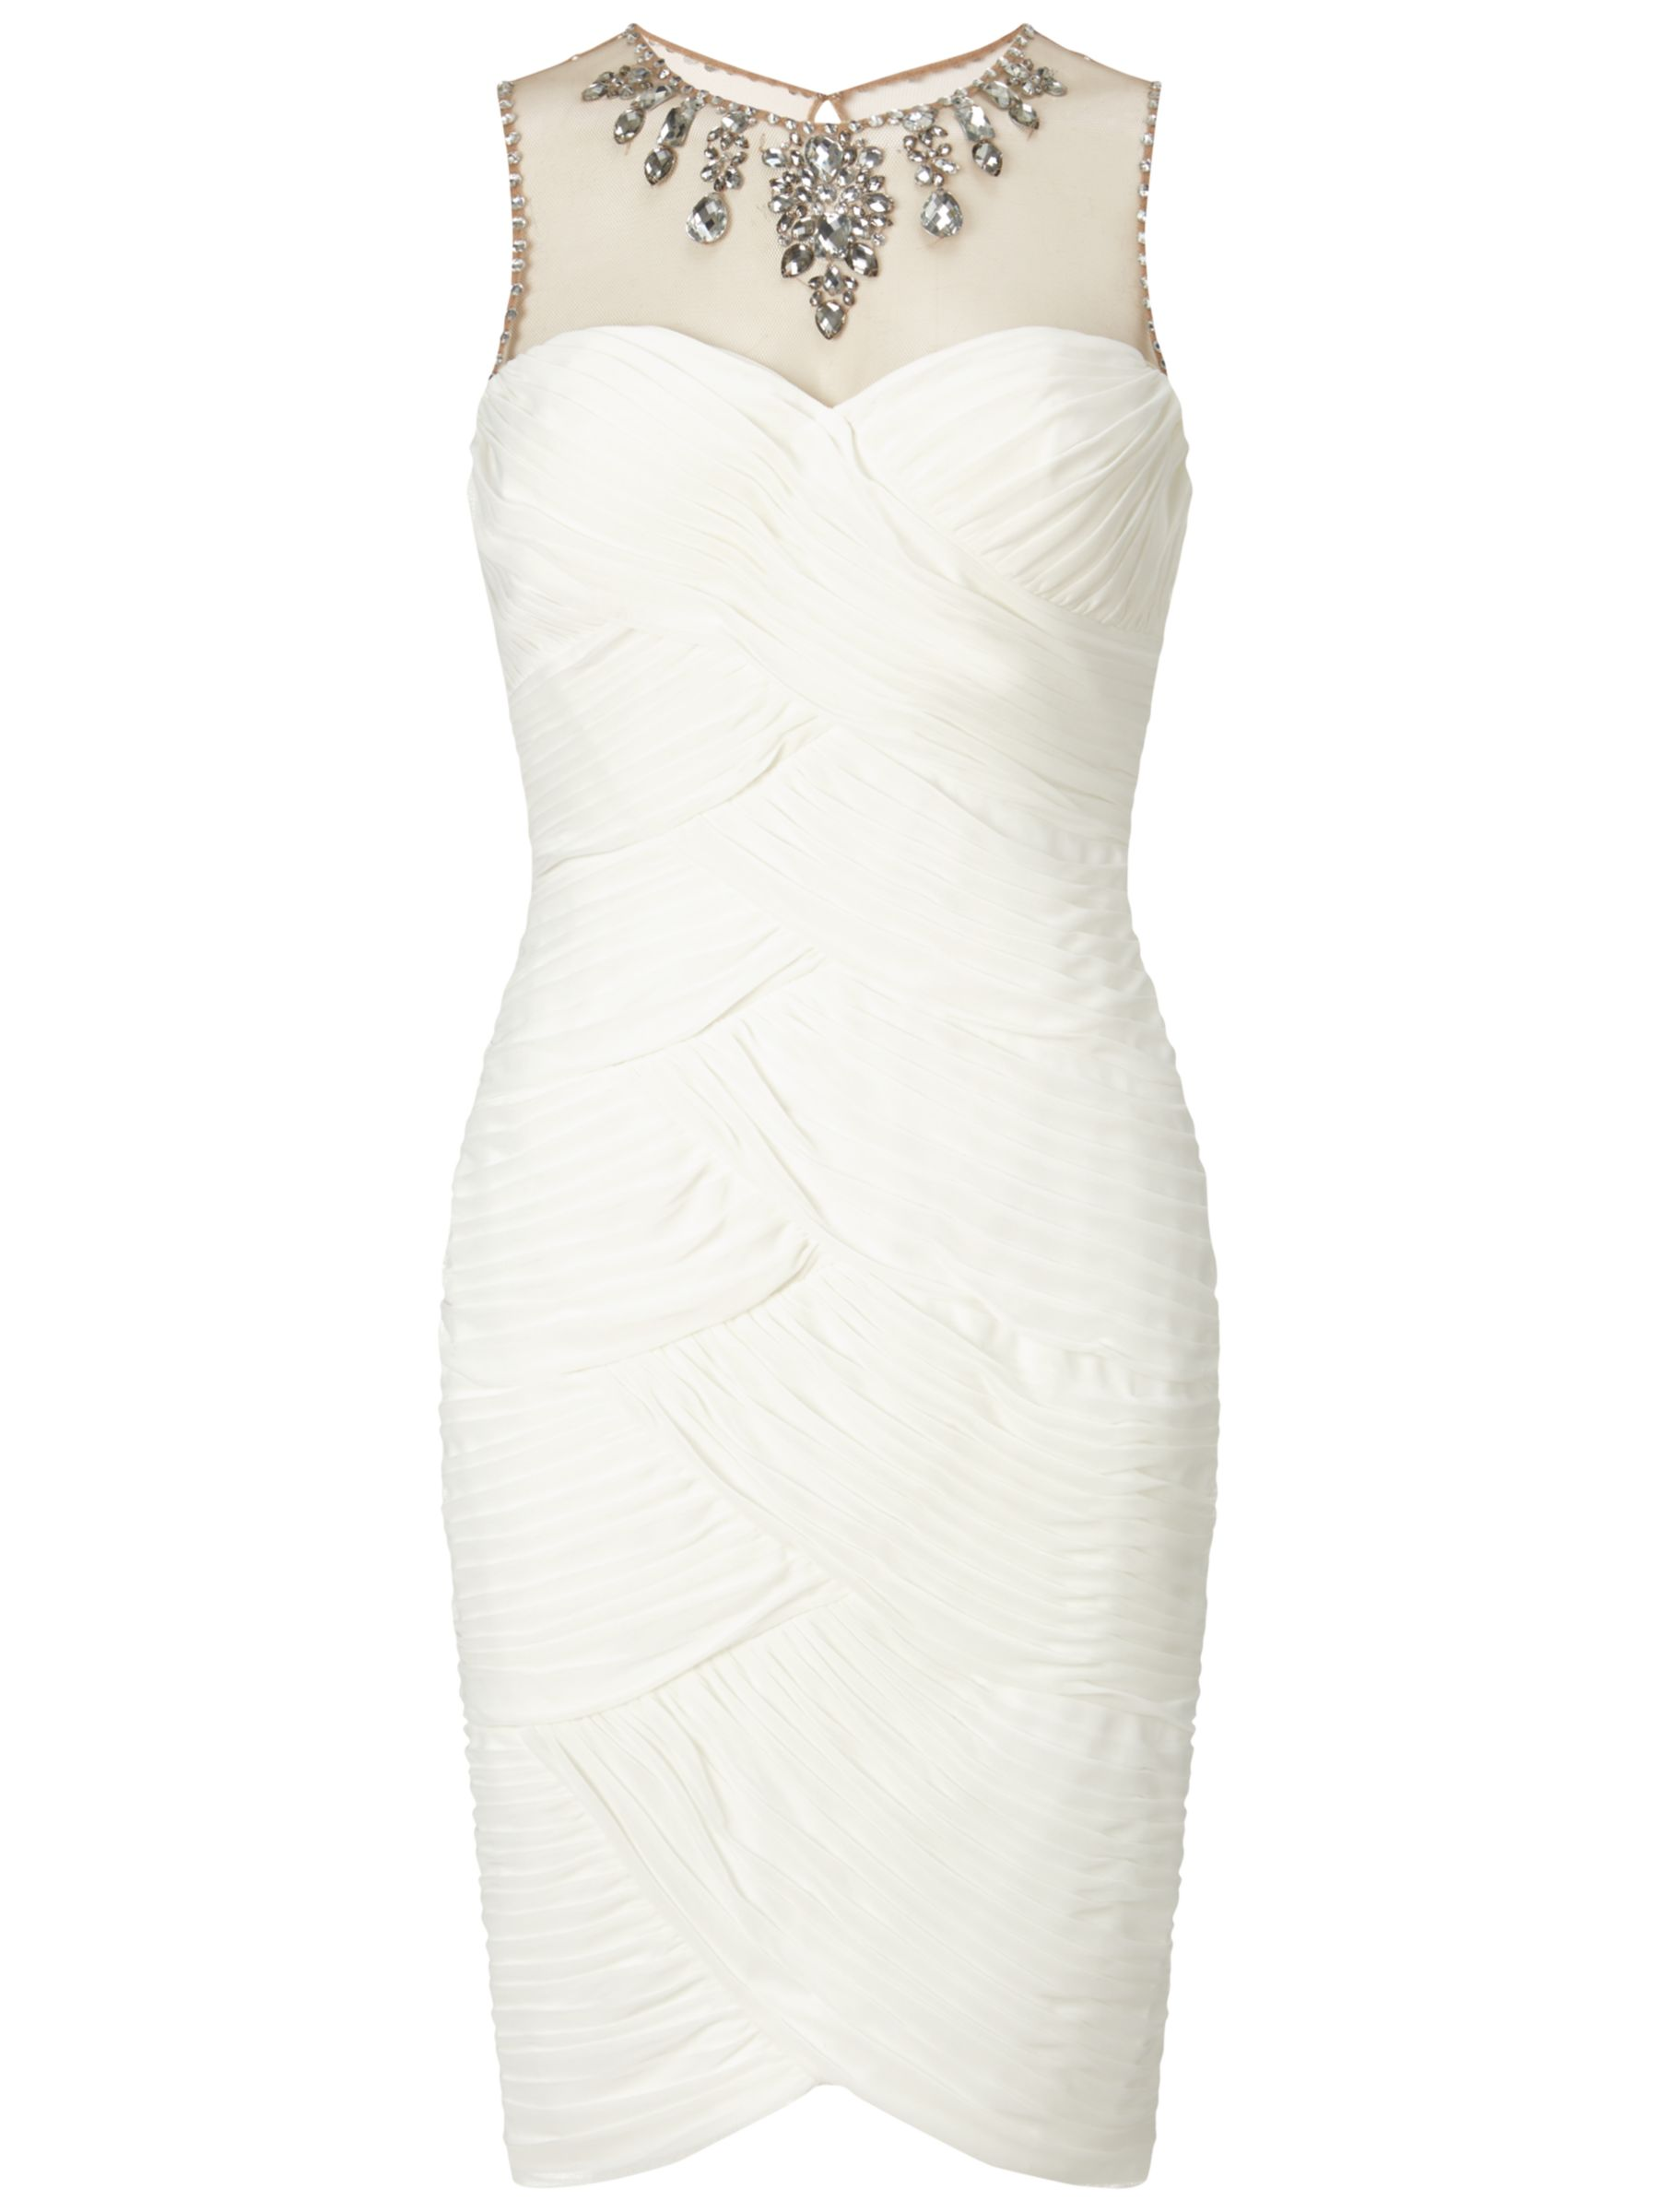 adrianna papell short shirred dress with beaded yoke ivory, adrianna, papell, short, shirred, dress, beaded, yoke, ivory, adrianna papell, 14 20 16 10 12 18 6 8, gifts, wedding, wedding clothing, wedding dresses, women, brands a-k, womens dresses, 1875576